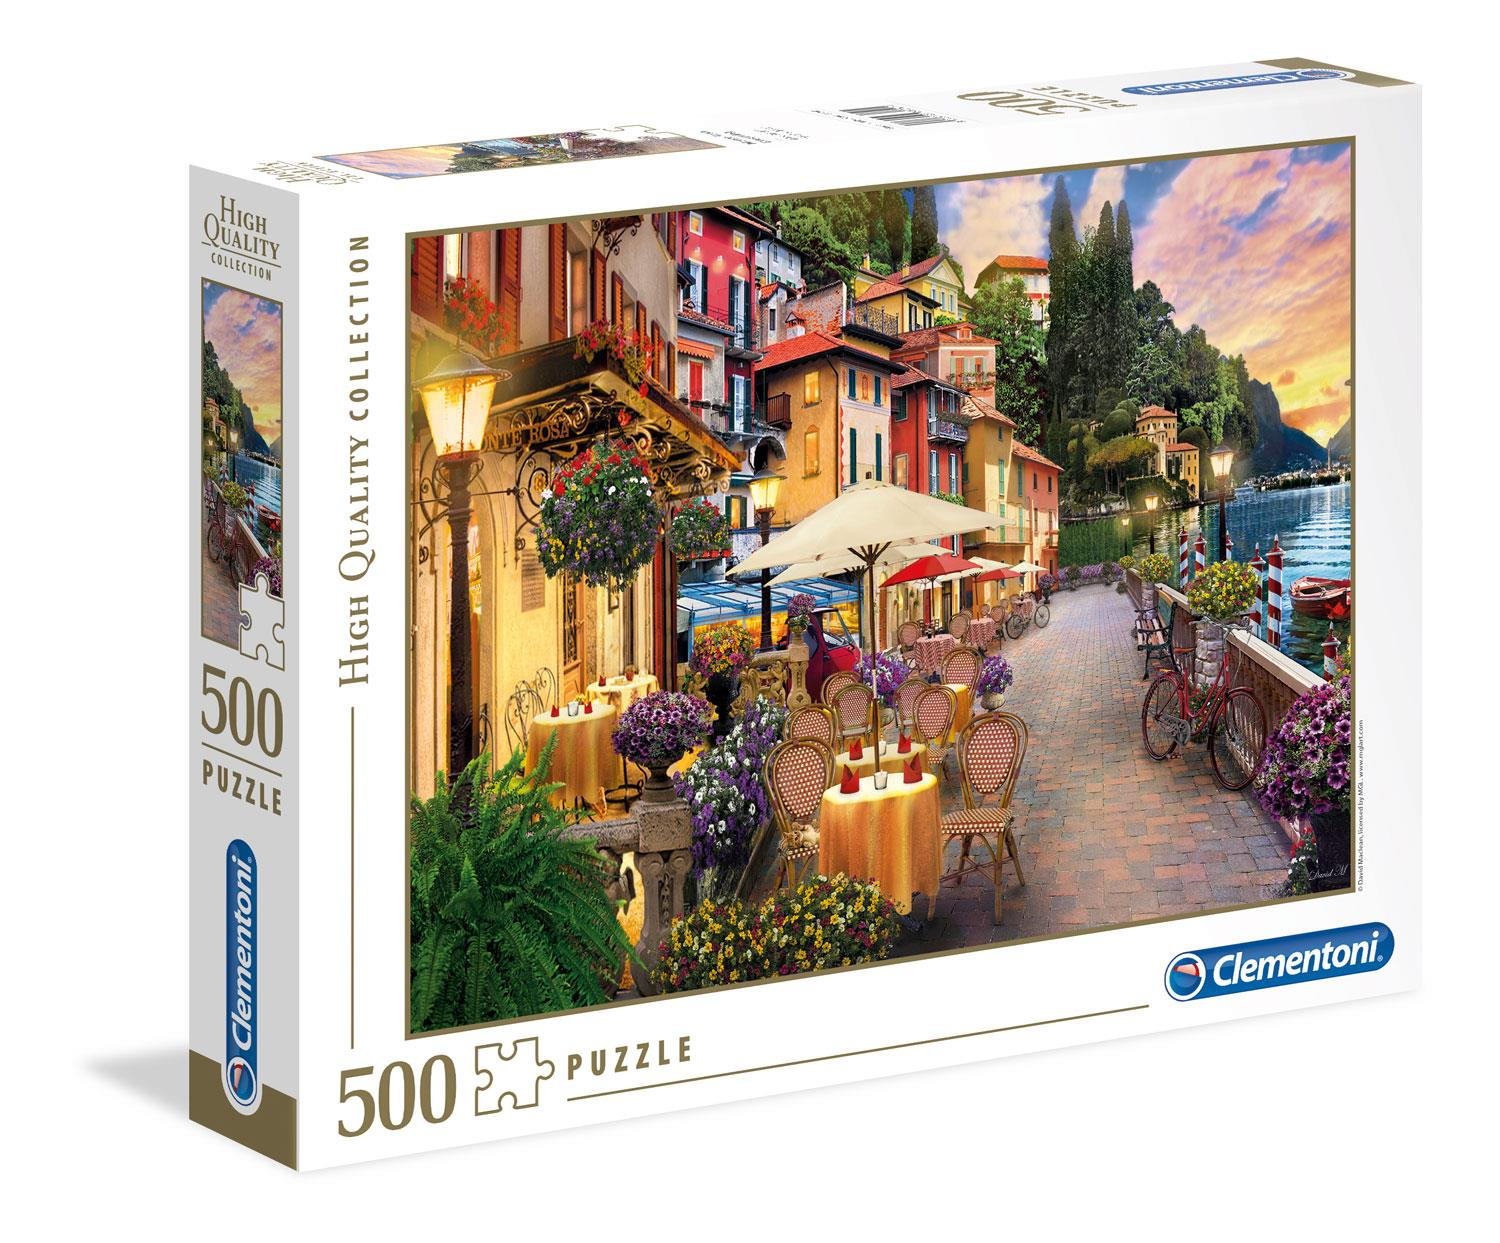 Clementoni Monte Rosa Dreaming High Quality Jigsaw Puzzle (500 Pieces)